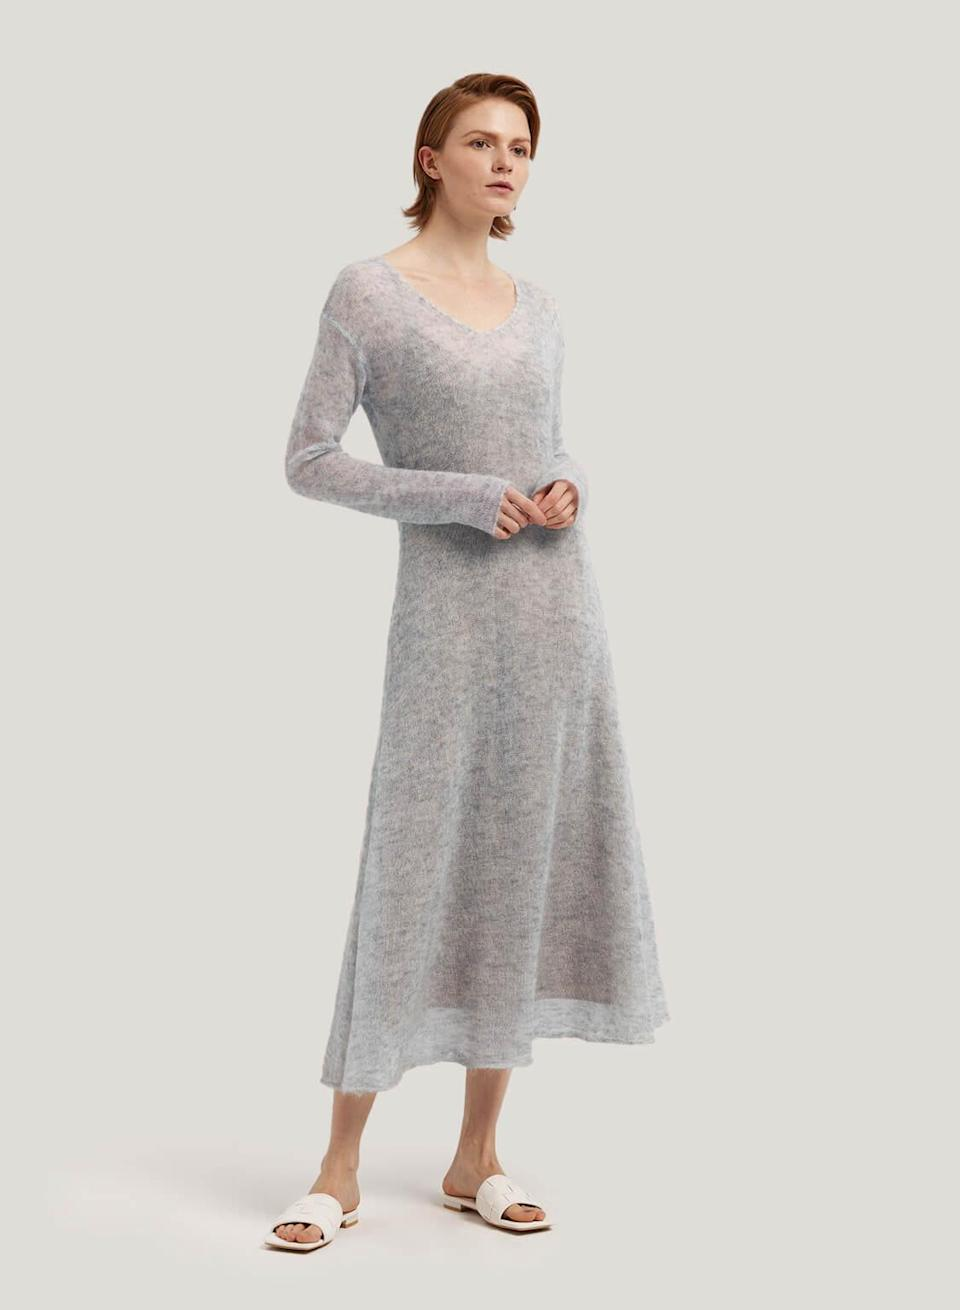 """<h2>Gentle Herd Mesh Overlay Maxi Dress</h2><br><em><strong>The Mesh Dress</strong></em><br><br>Crafted from the dreamiest of materials, this sleek dress hits the style trifecta: soft, sophisticated, seasonless. <br><br><strong>The Hype: </strong>4.8 out of 5 stars; 106 reviews on GentleHerd.com<br><br><strong>What They're Saying</strong>: """"So happy with this purchase. Item as described. Great quality & fast delivery."""" — Athena Toynbee, Gentle Herd reviewer<br><br><em>Shop</em> <em><a href=""""https://gentleherd.com/product/mesh-overlay-maxi-dress/"""" rel=""""sponsored"""" target=""""_blank"""" data-ylk=""""slk:Gentle Herd"""" class=""""link rapid-noclick-resp""""><strong>Gentle Herd</strong></a></em><br><br><strong>Gentle Herd</strong> Mesh Overlay Maxi Dress, $, available at <a href=""""https://go.skimresources.com/?id=30283X879131&url=https%3A%2F%2Fgentleherd.com%2Fproduct%2Fmesh-overlay-maxi-dress%2F"""" rel=""""sponsored"""" target=""""_blank"""" data-ylk=""""slk:Gentle Herd"""" class=""""link rapid-noclick-resp"""">Gentle Herd</a>"""